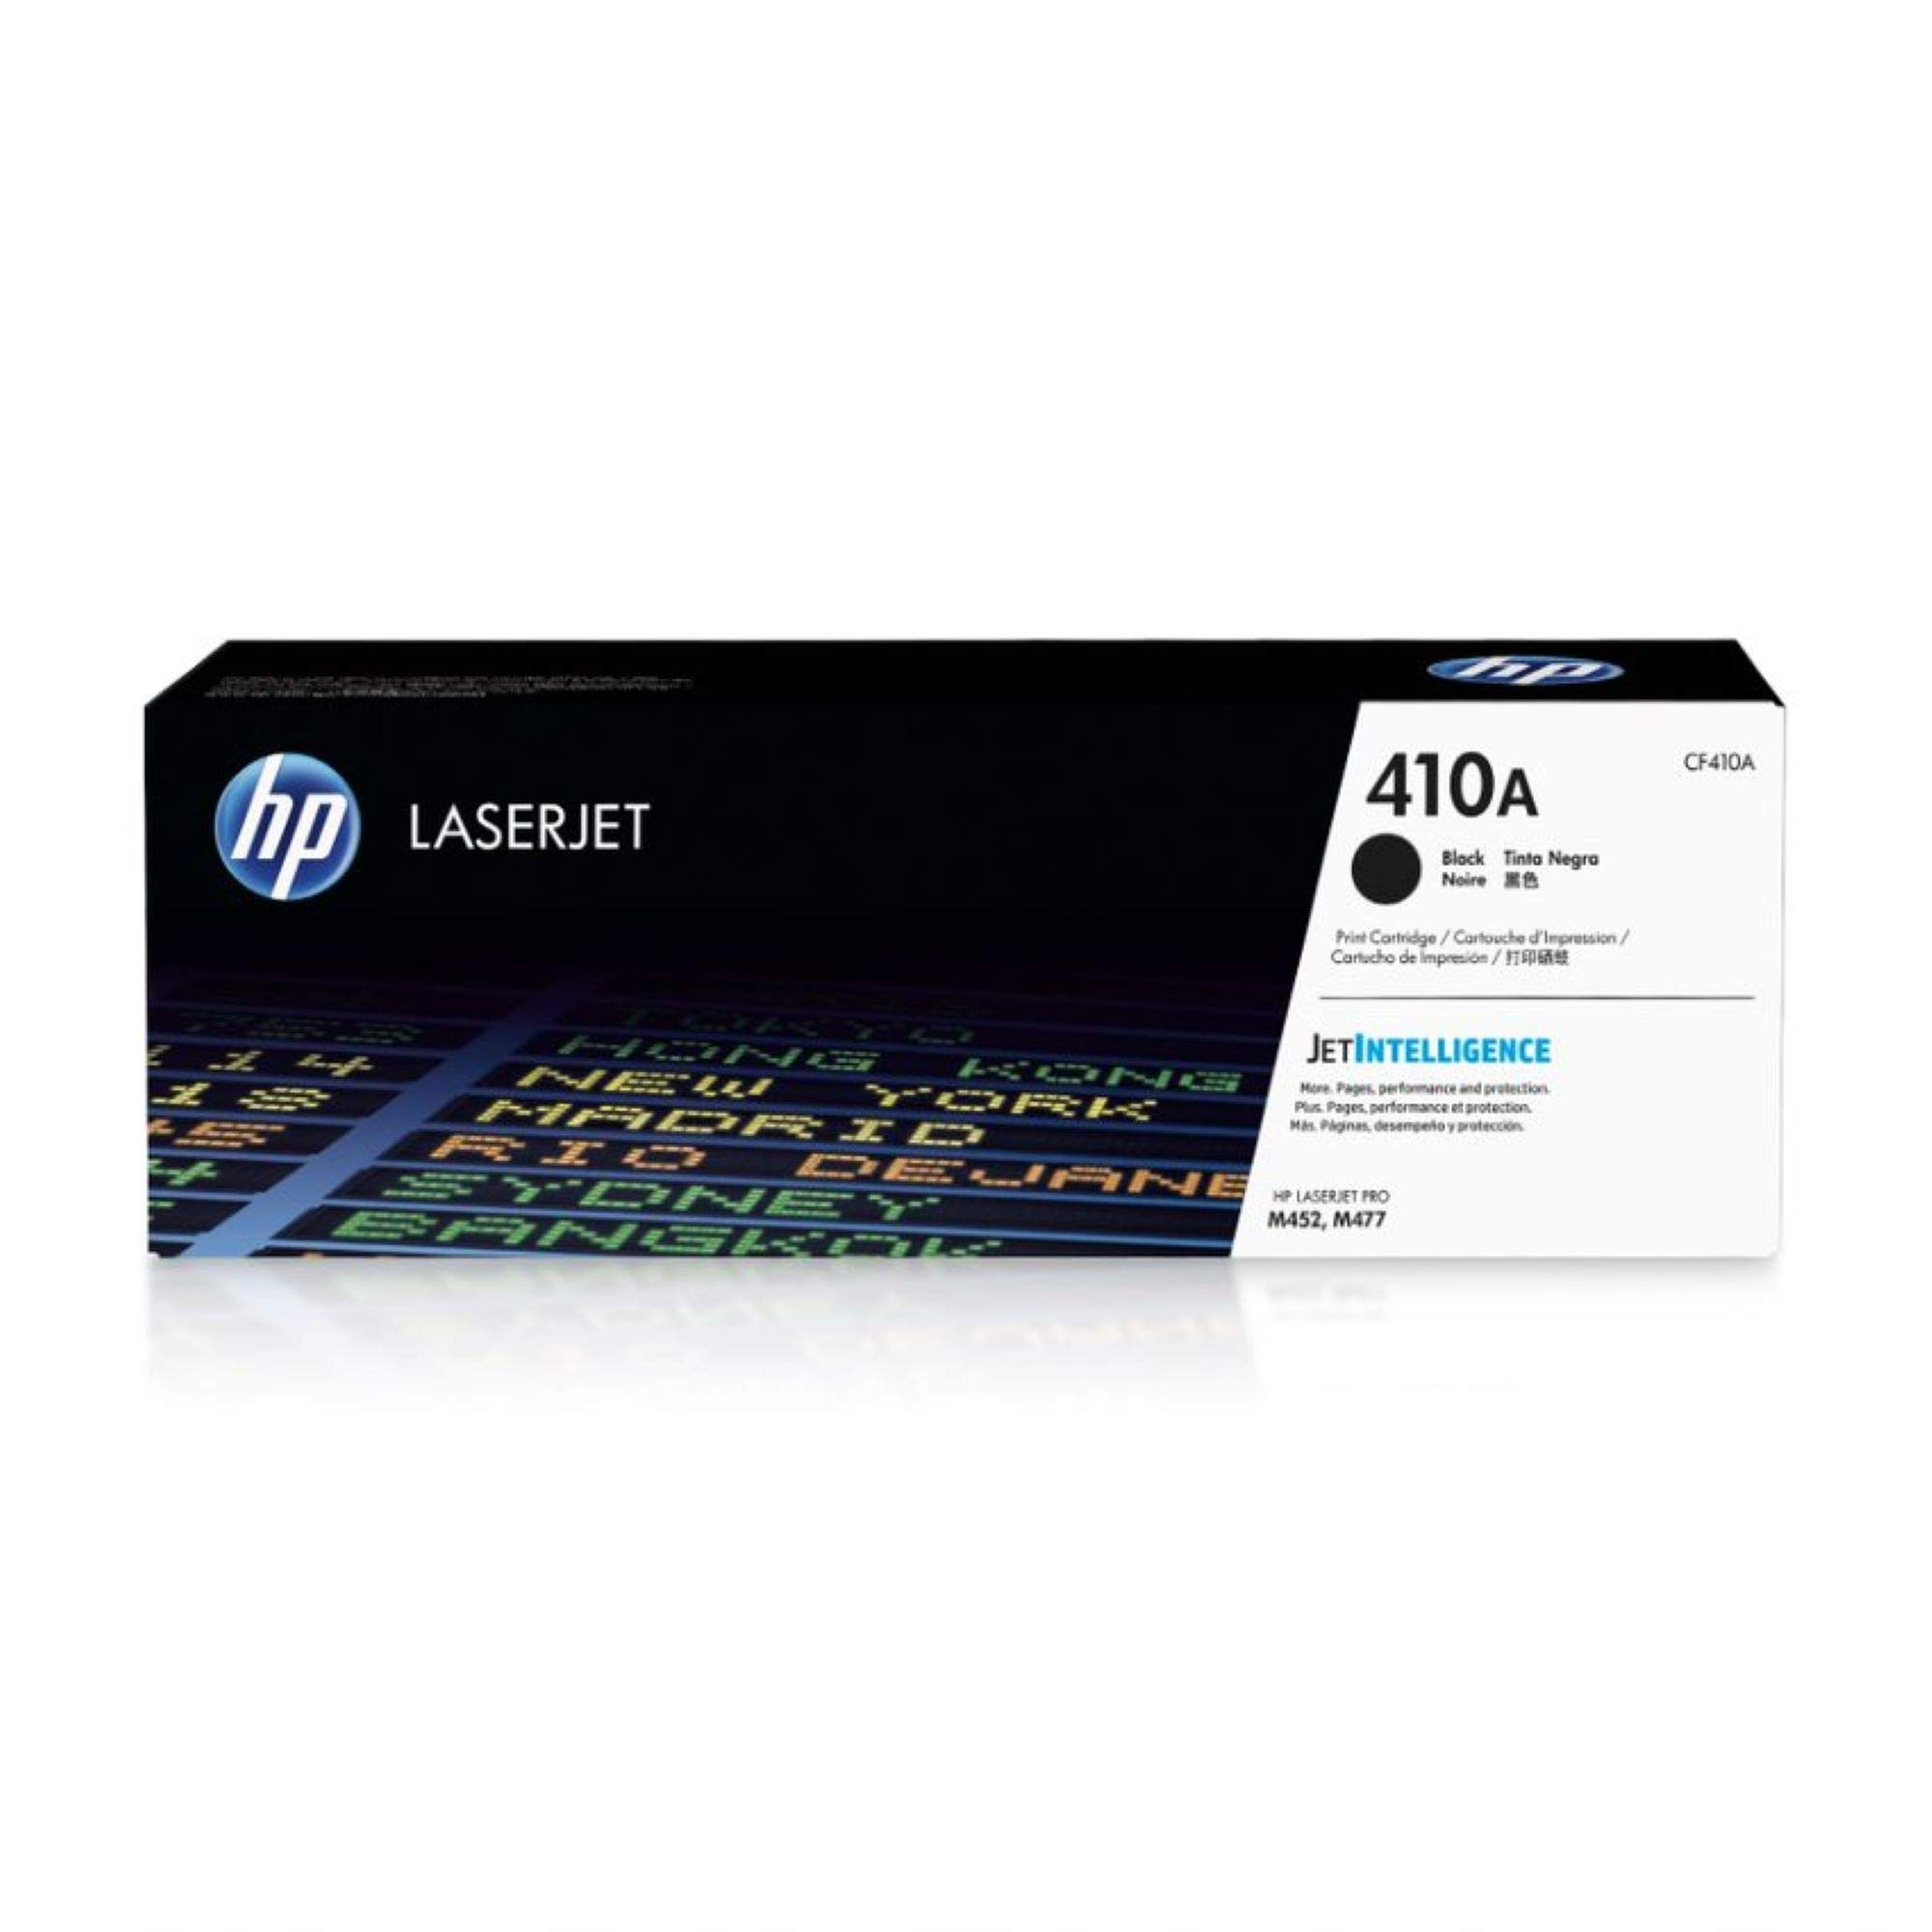 HP 410A CF410A Toner Cartridge Works with HP Color LaserJet Pro M452 Series, M377dw, MFP 477 Series Black